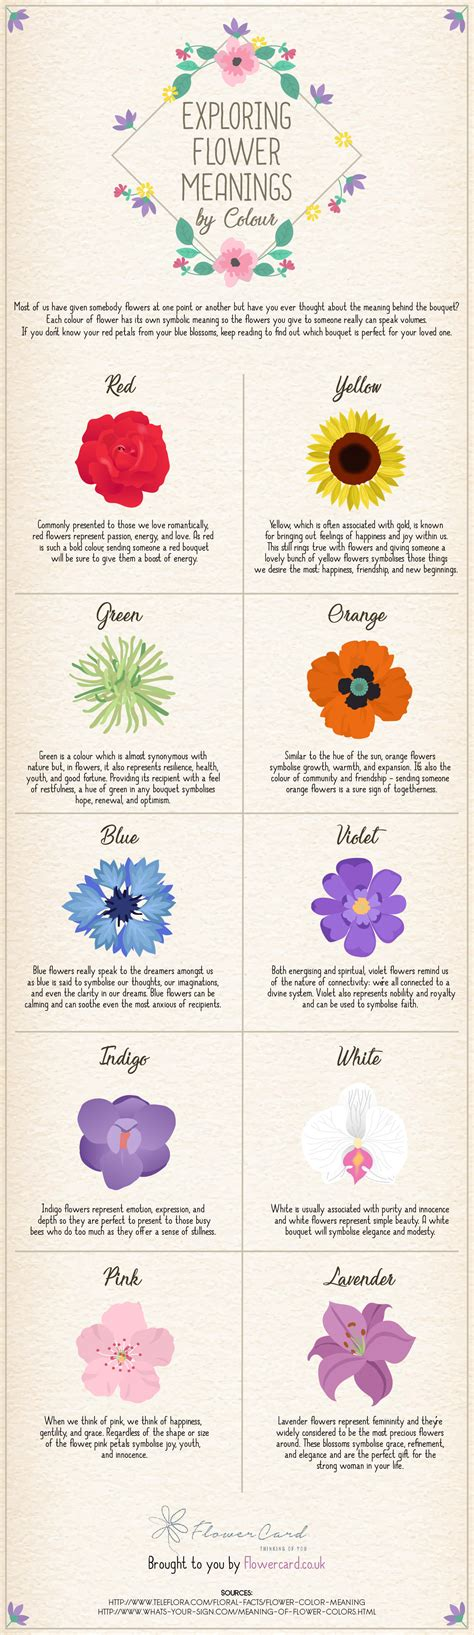 flower color meanings exploring flower meanings by colour infographic